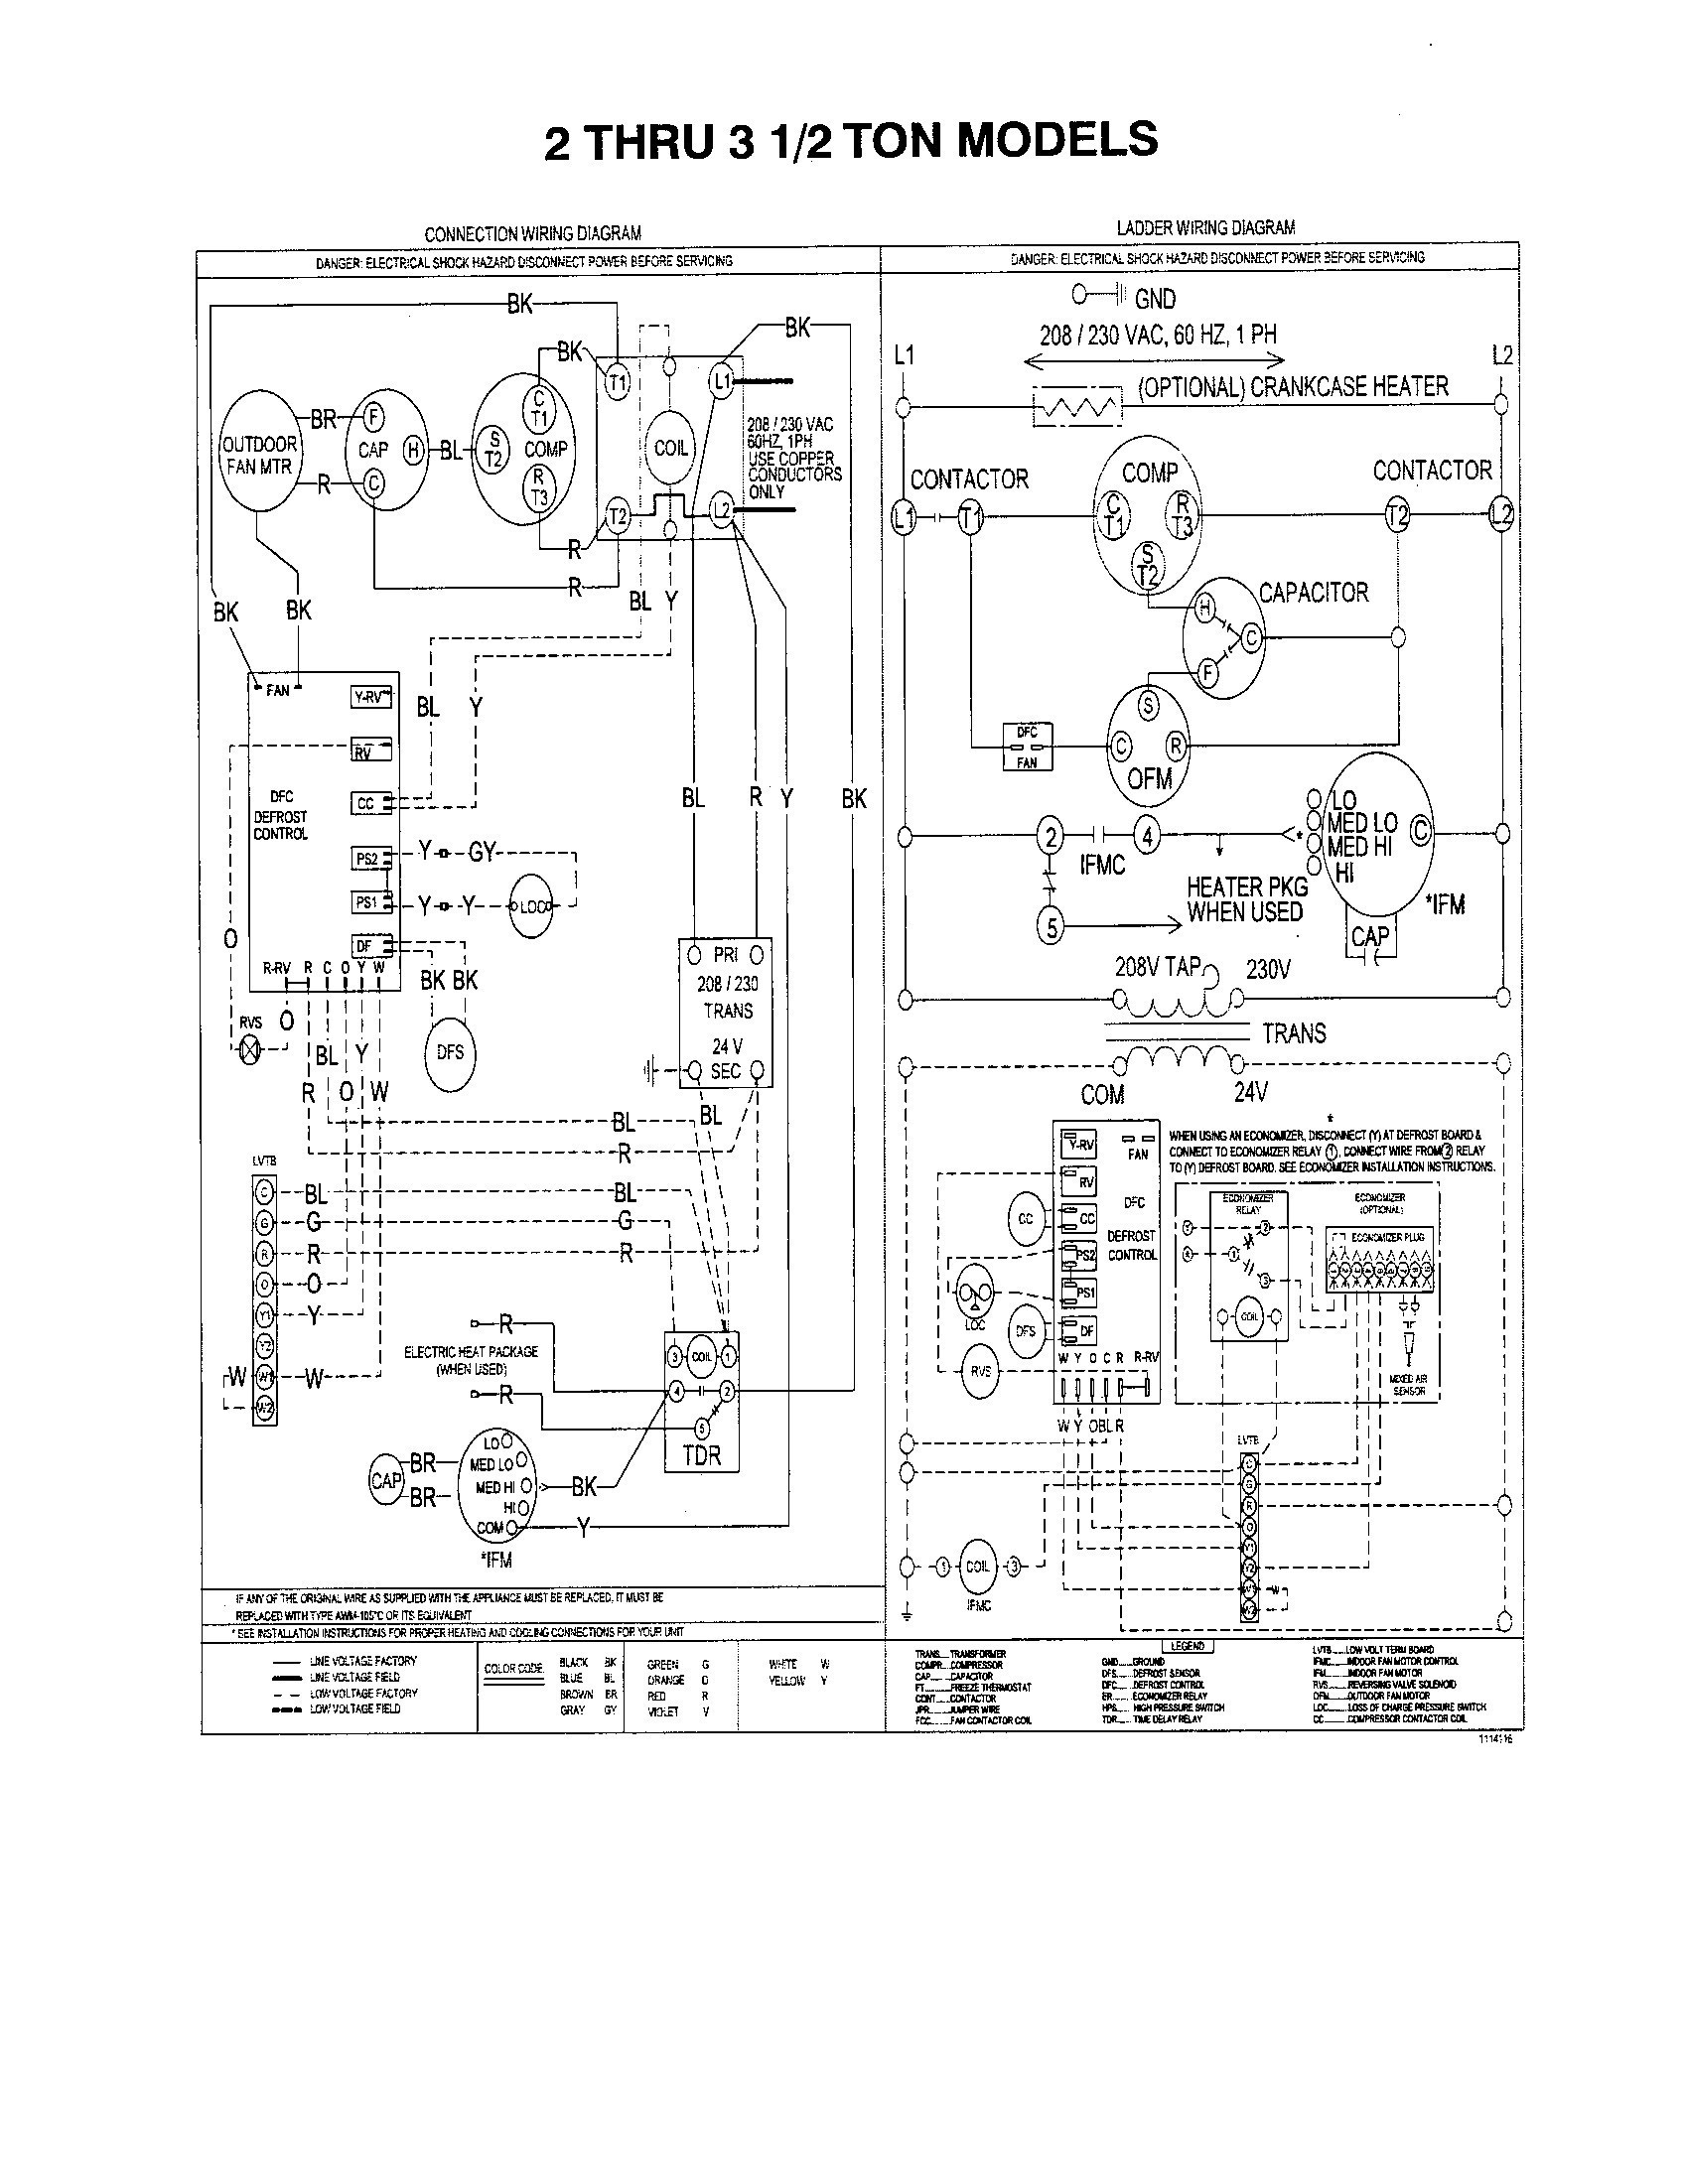 York Air Conditioning Wiring Diagram split ac wiring diagram ... York Split Ac Wiring Diagram on